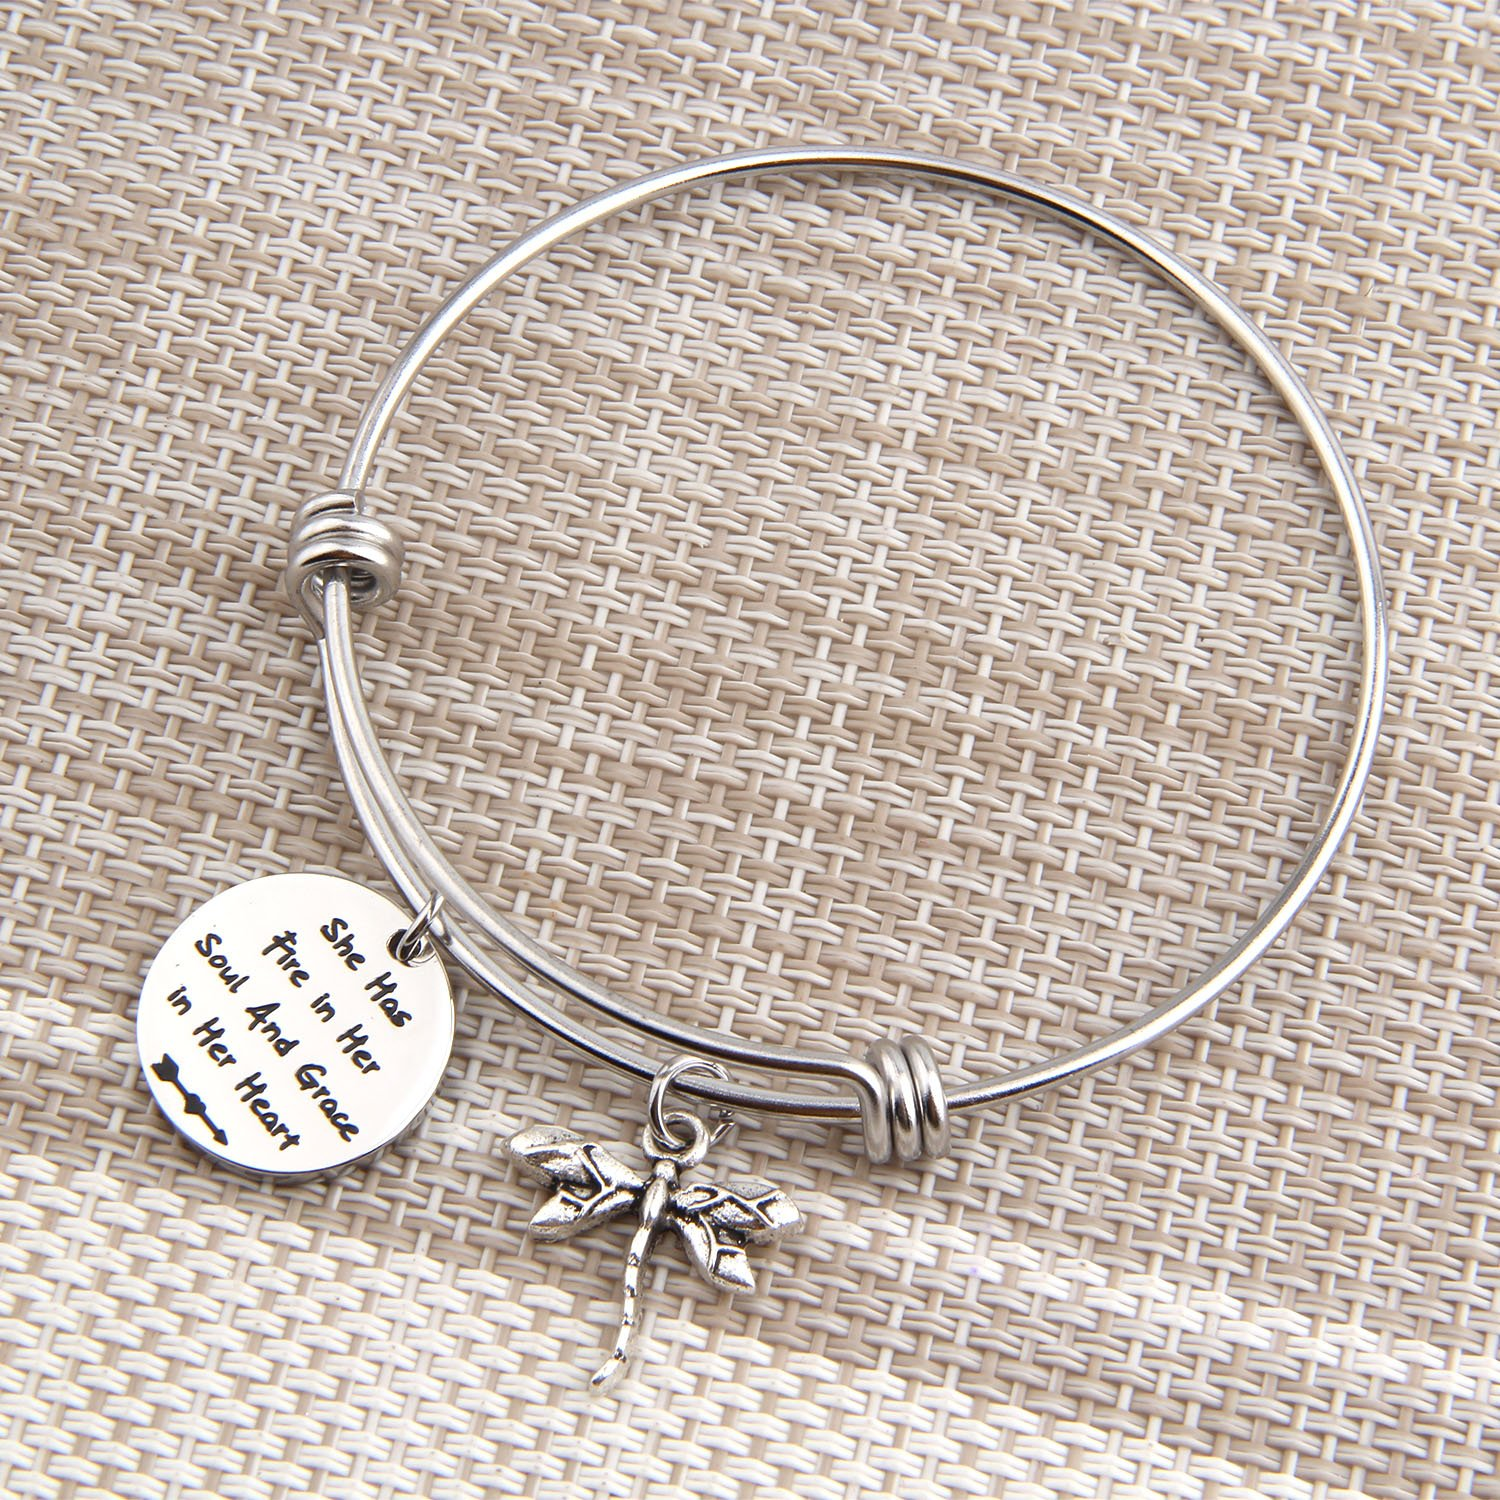 PLITI Inspirational Jewelry Graduation Gift She Has Fire in Her Soul and Grace in Her Heart Bracelet with Dragonfly Charm Motivational Faith Gift for Her (She has fire in Soul) by PLITI (Image #5)